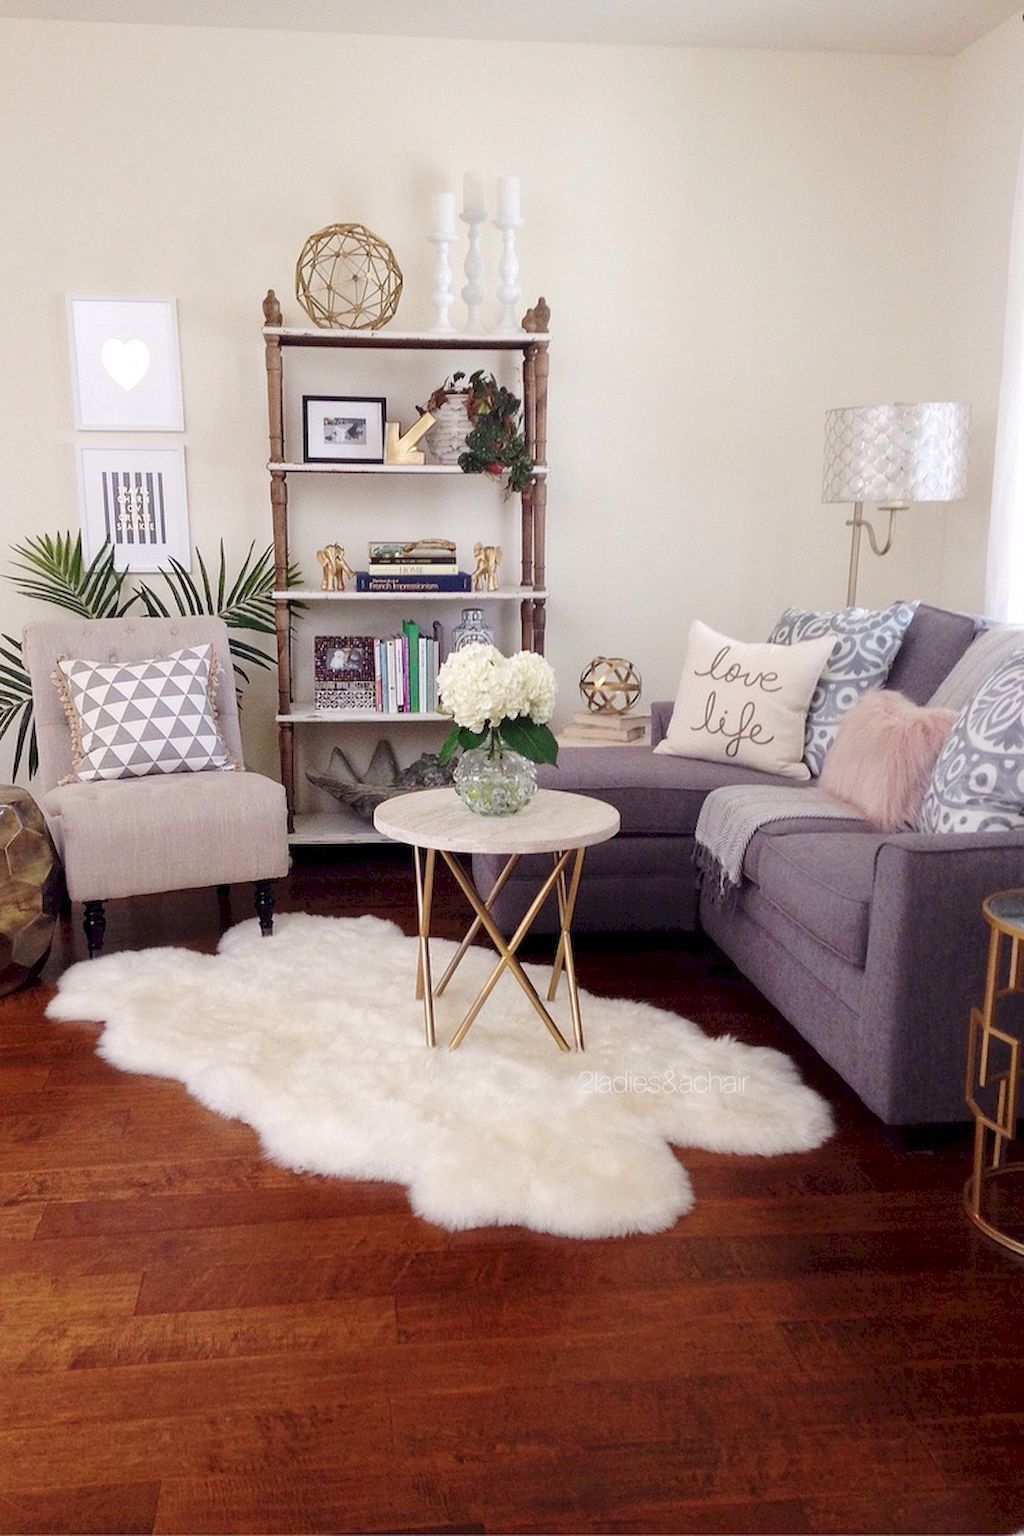 36 Cozy Living Room Ideas On A Budget In 2020 Living Room Decor Apartment Small Apartment Living Room First Apartment Decorating